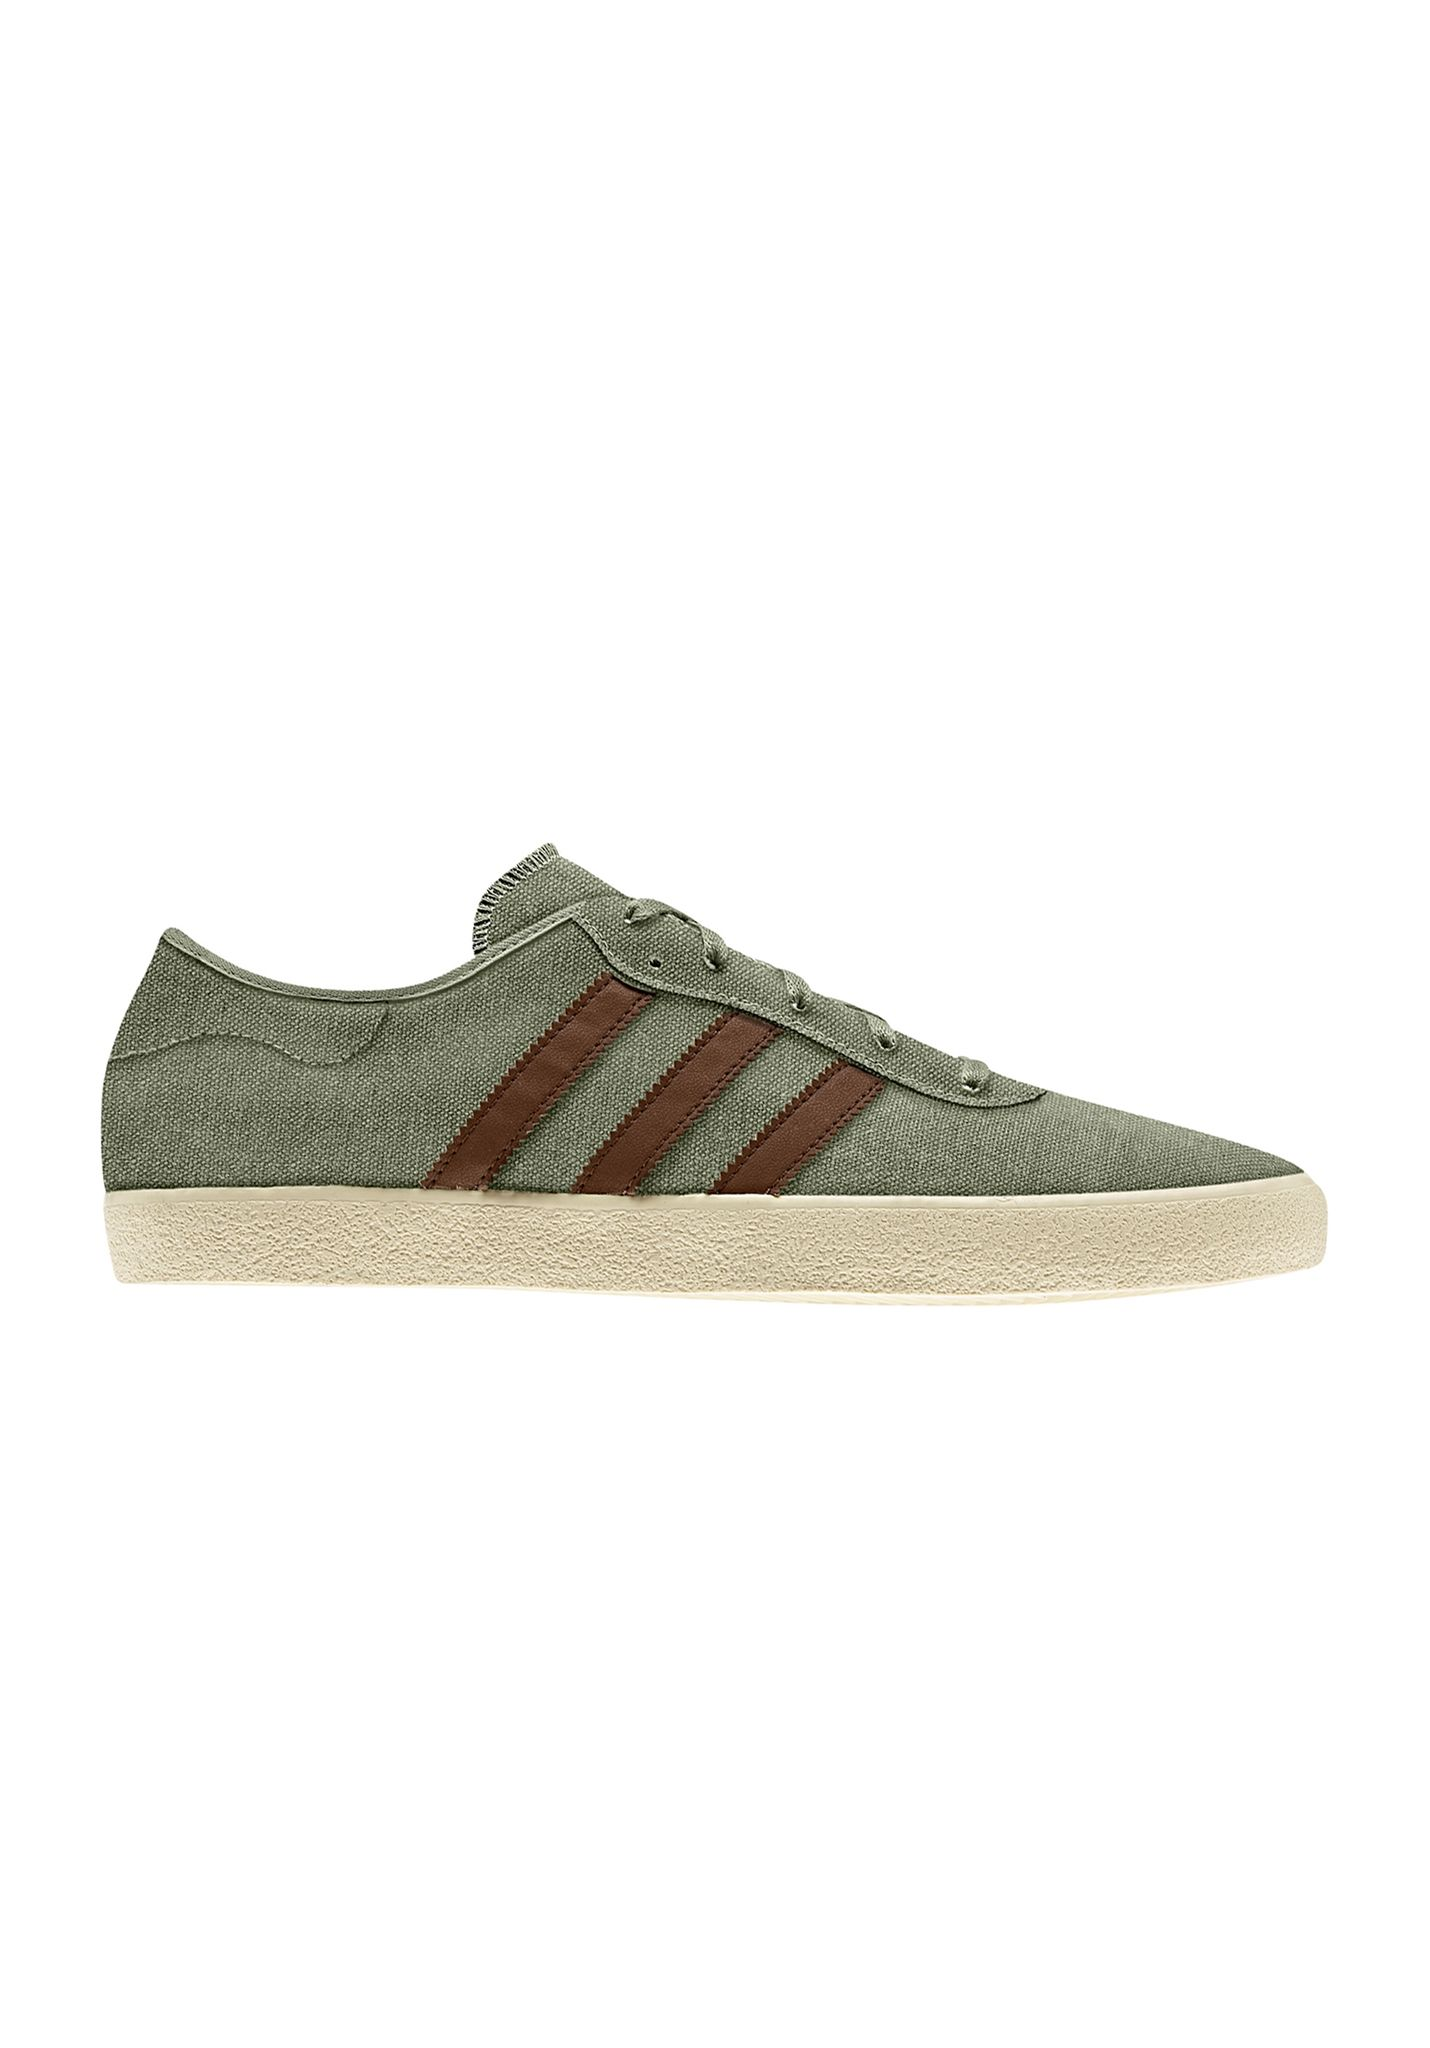 purchase cheap 75a33 cb496 ADIDAS Adi-Ease Surf - Sneakers per Uomo - Verde - Planet Sp